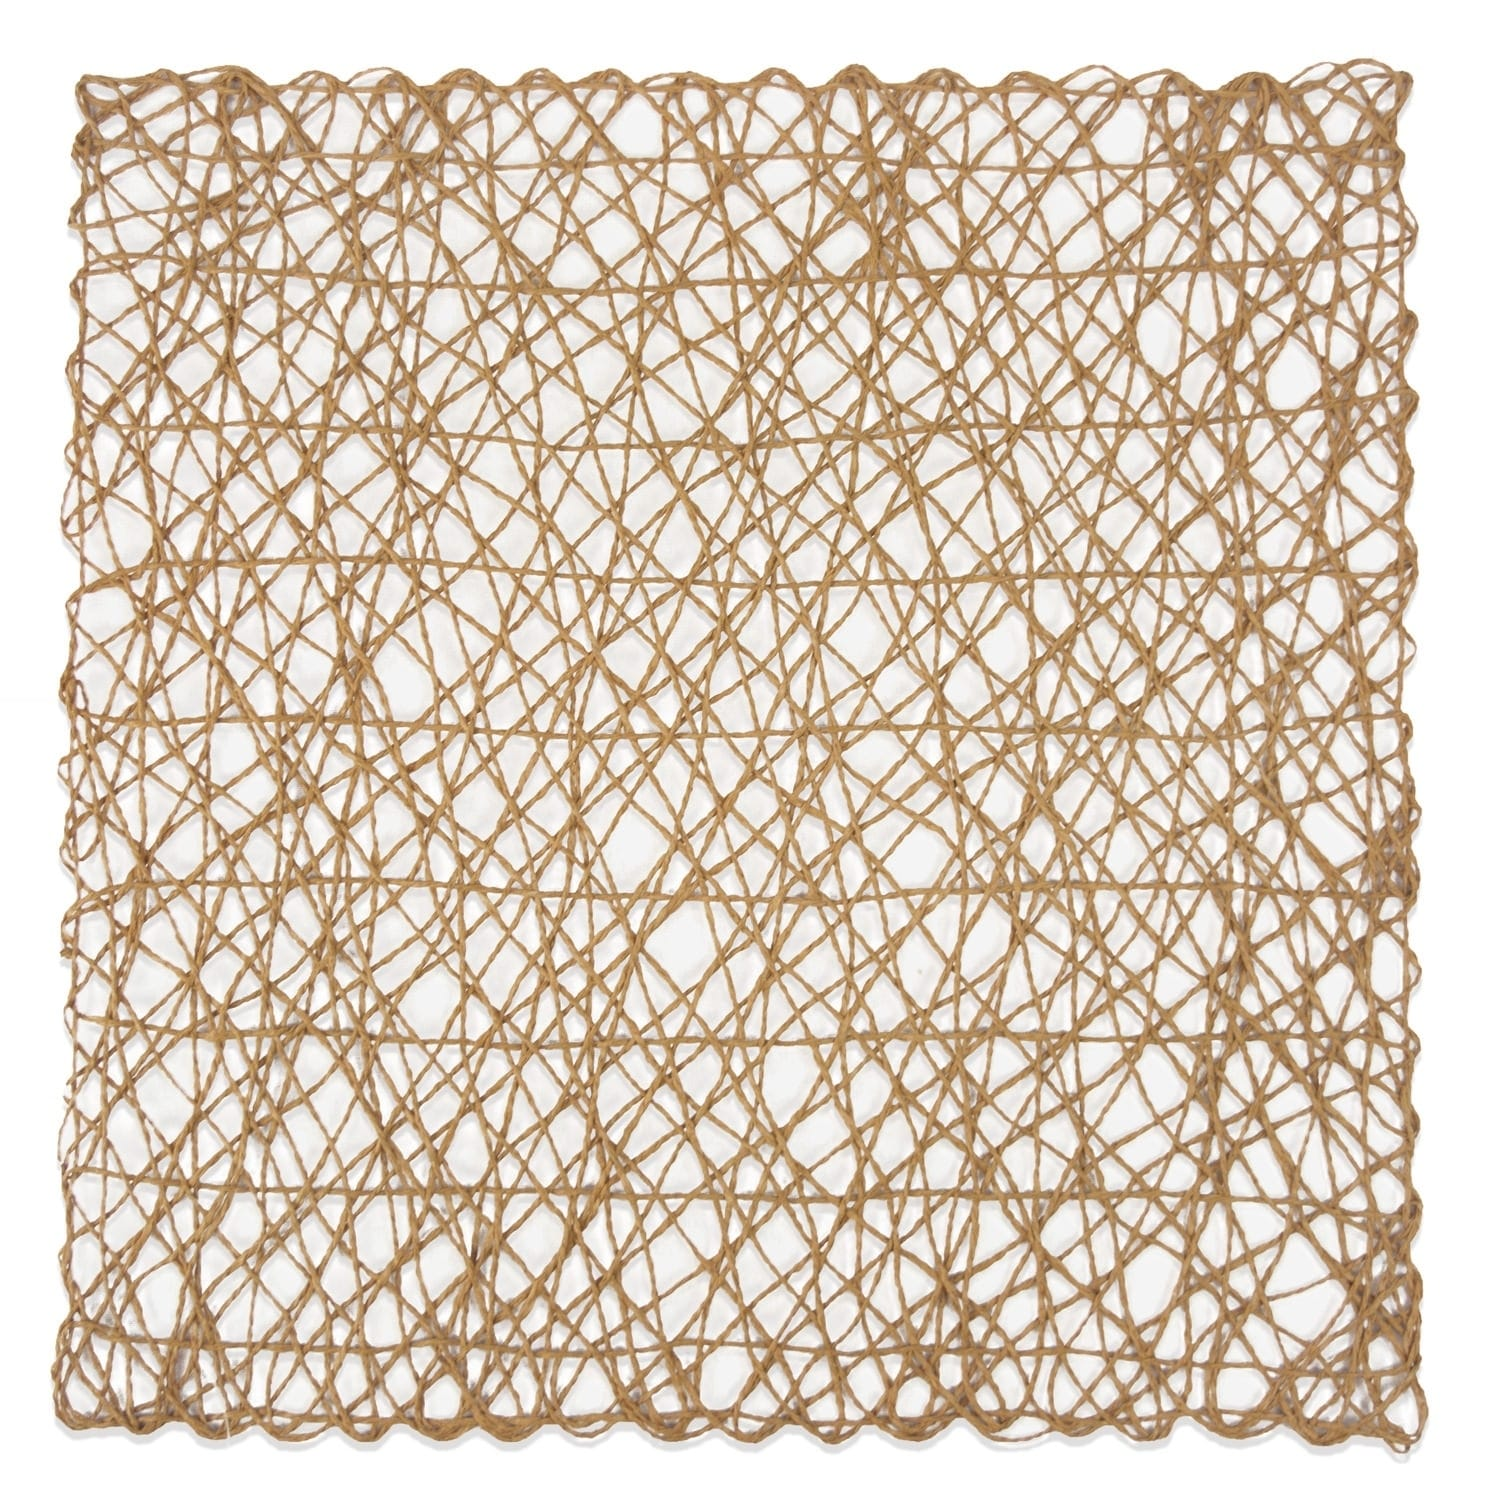 Design Imports Round Woven Paper Silver Kitchen Placemat Set (Set of ...